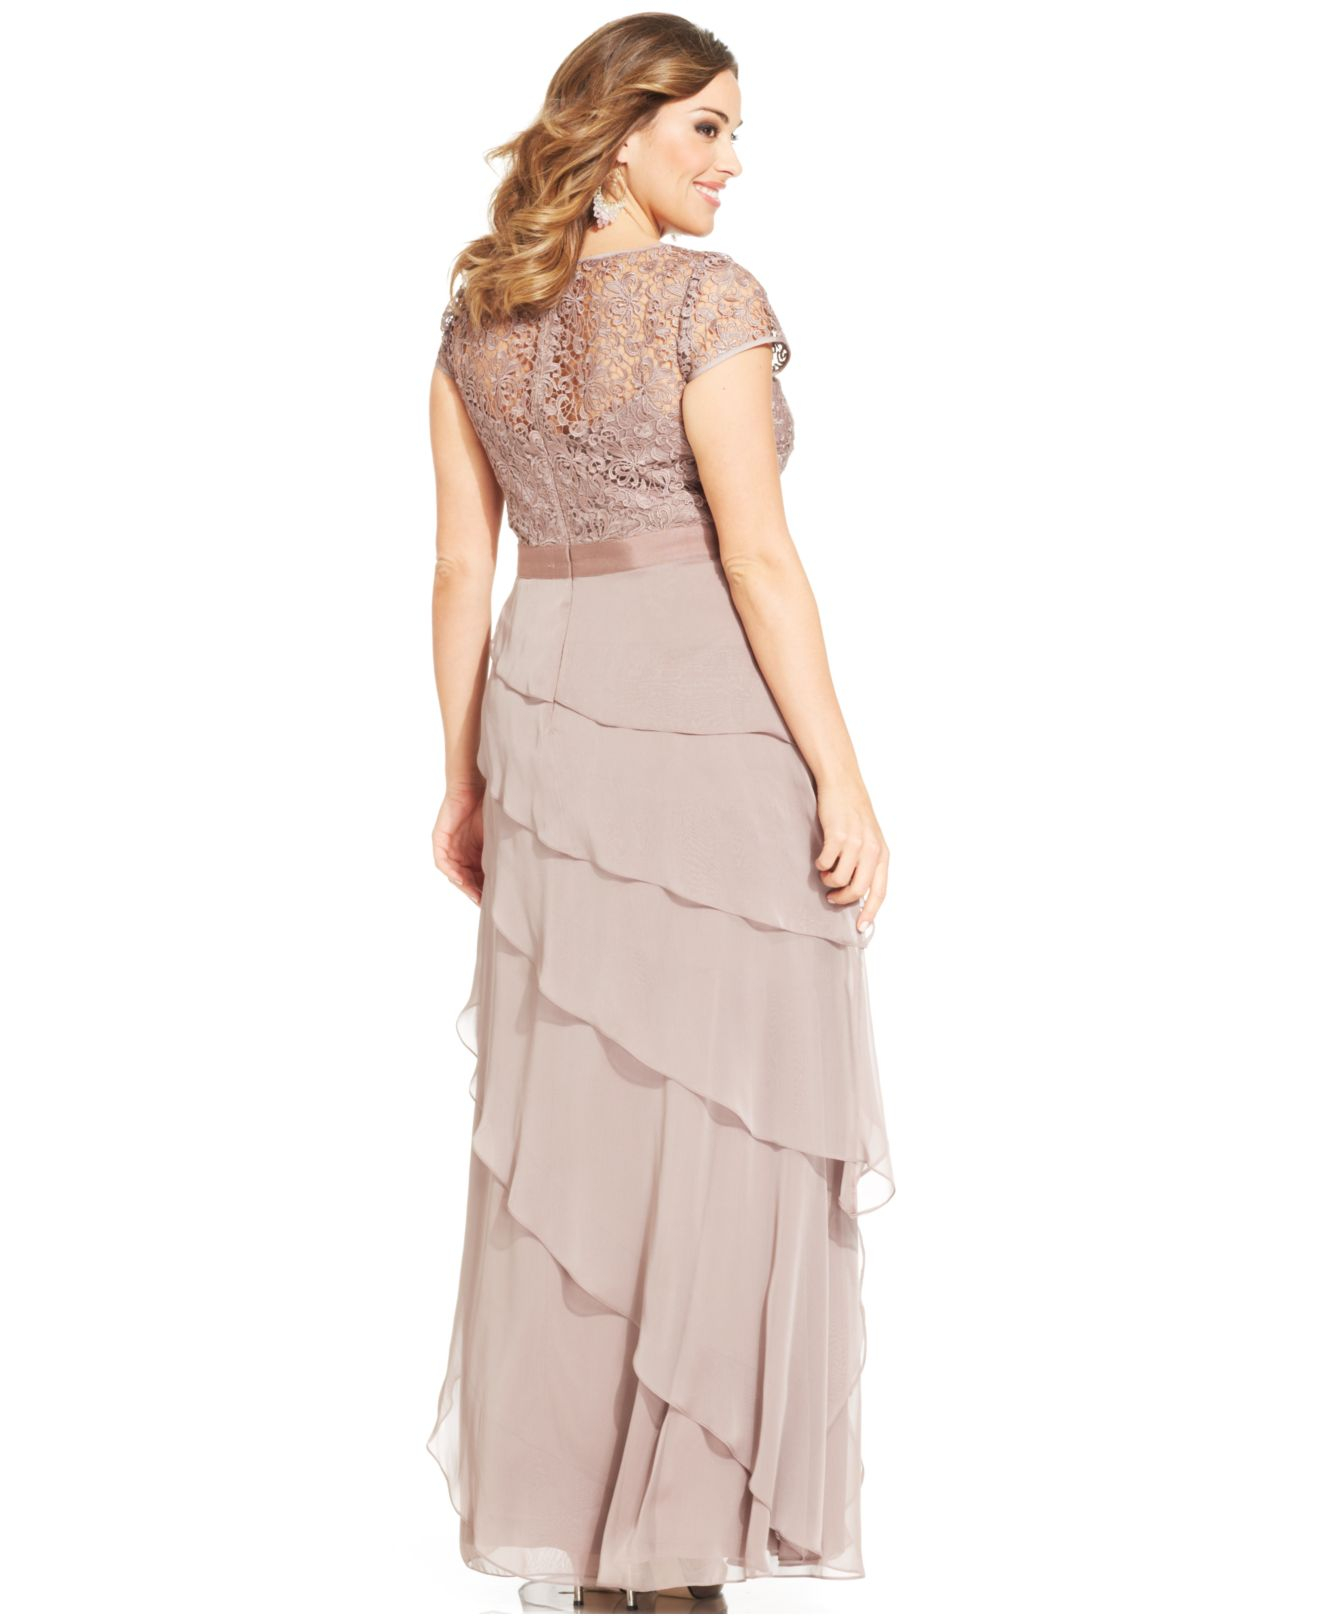 Lyst - Adrianna Papell Plus Size Cap-Sleeve Lace Tiered Gown in Pink